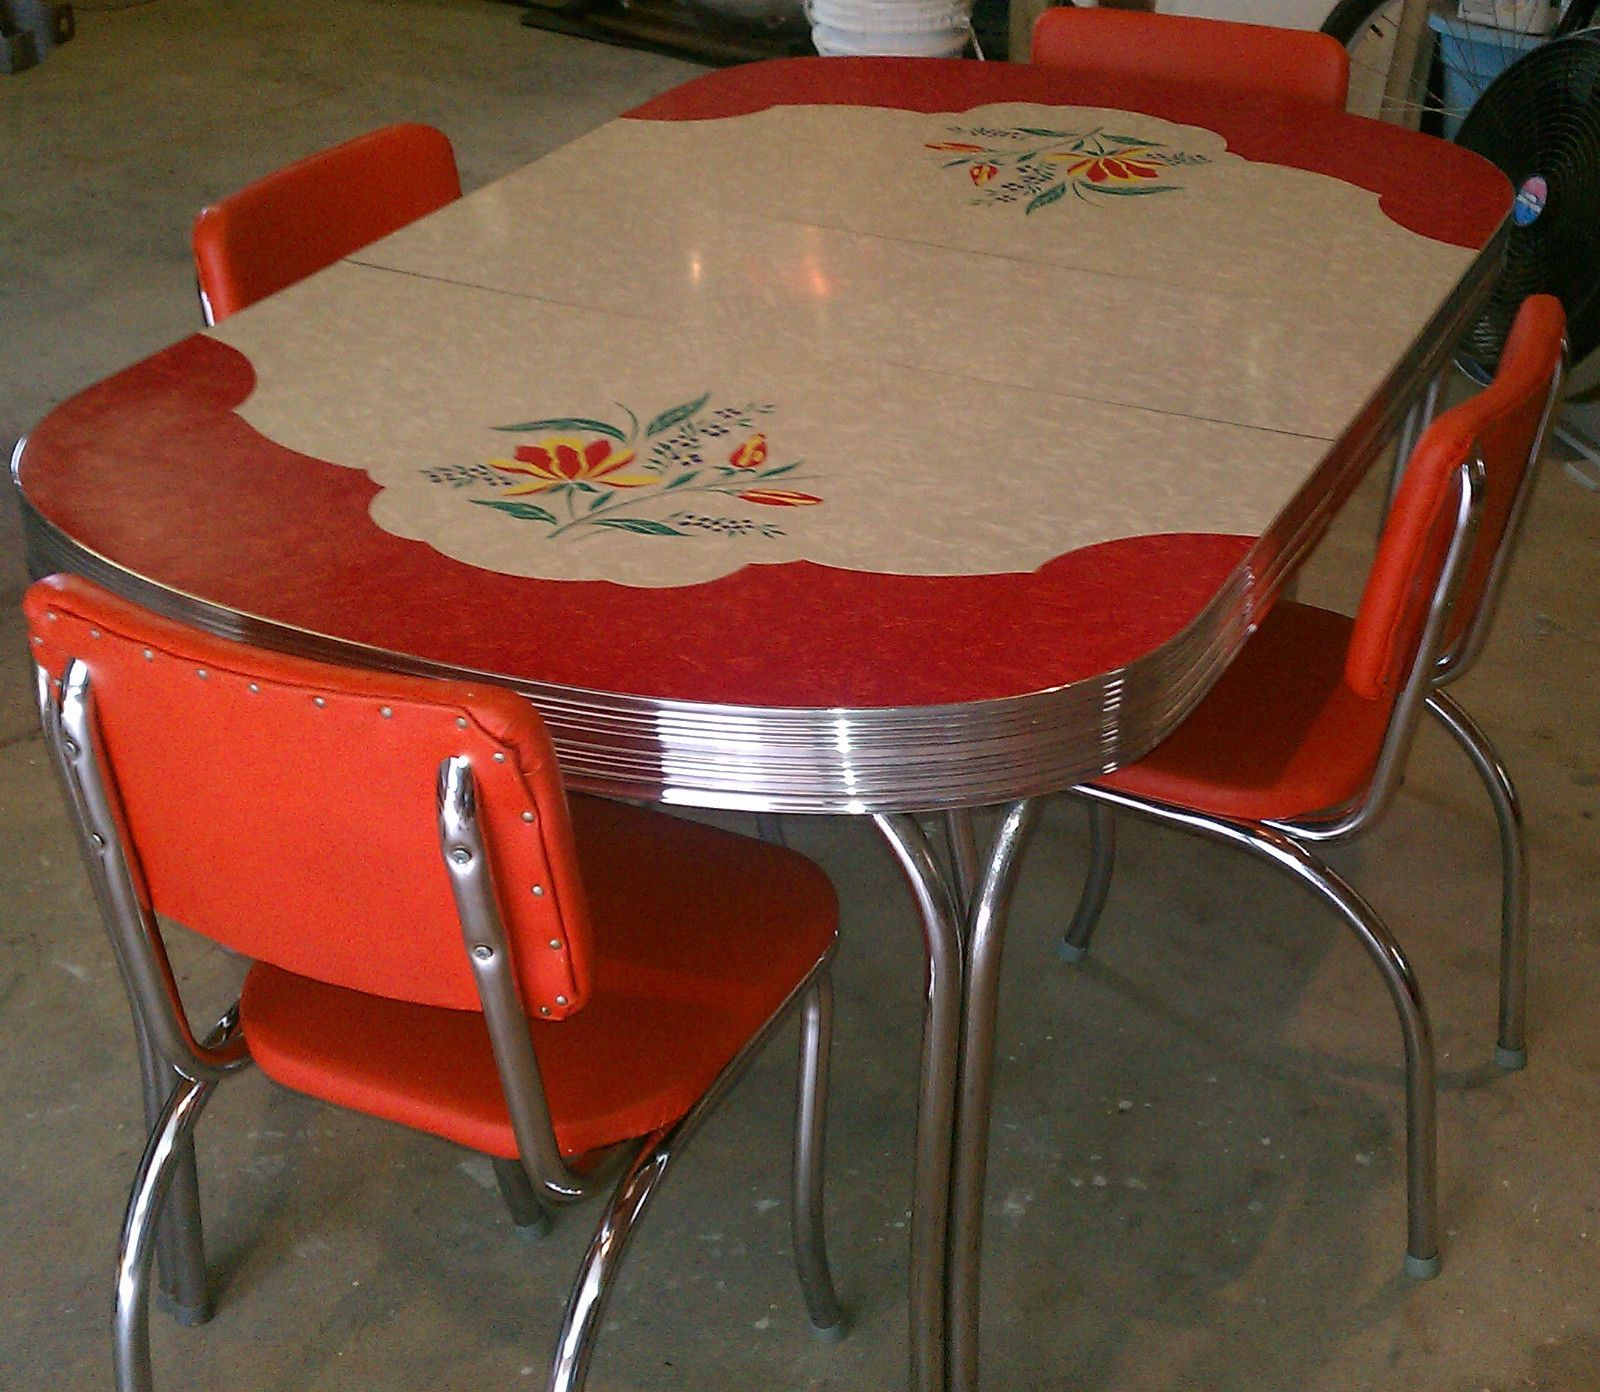 Vintage Chrome Kitchen Table: Details About Vintage Kitchen Formica Table 4 Chairs Chrome Orange Red White/Gray Retro Eames